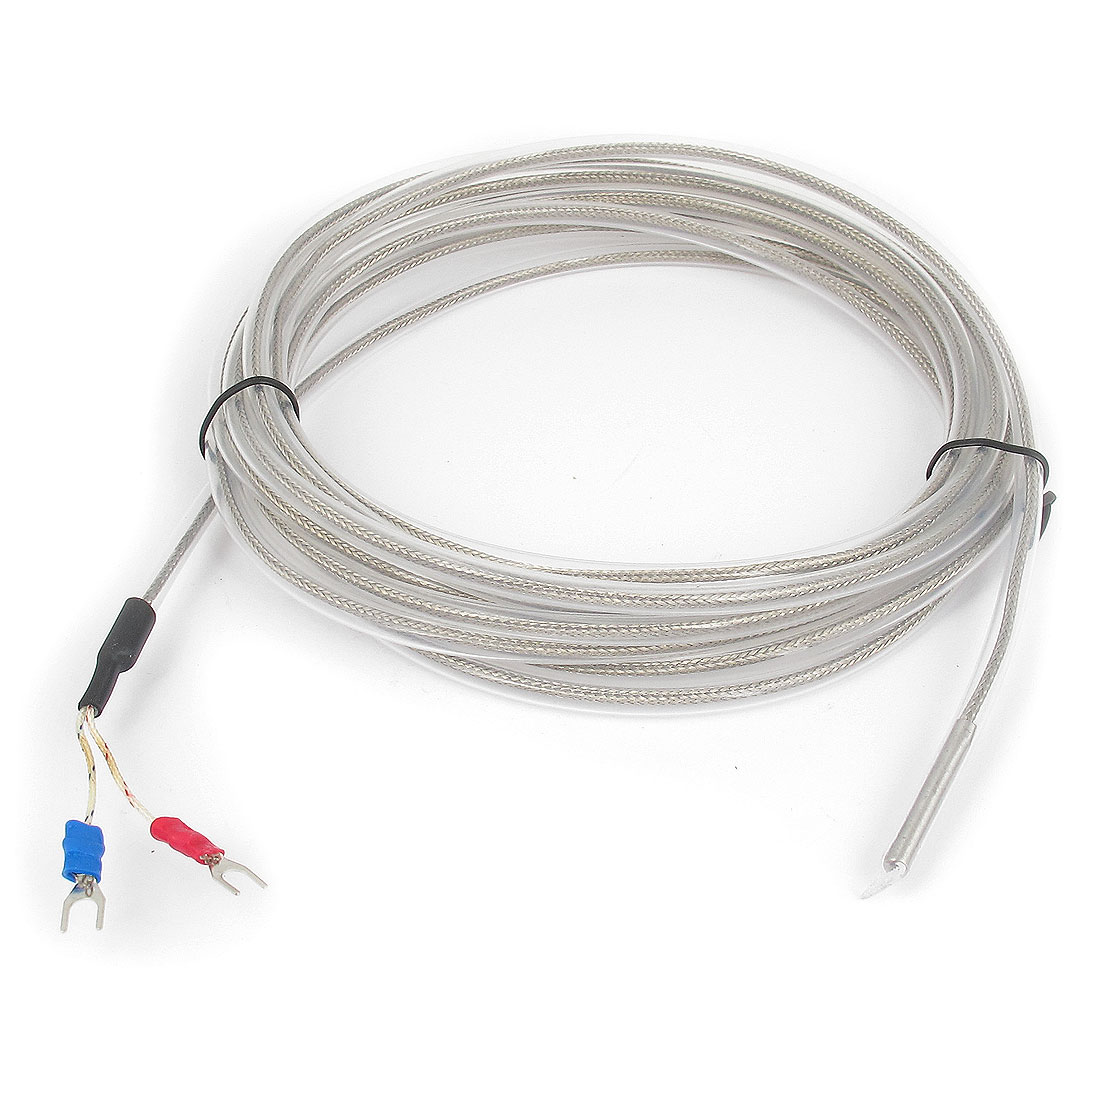 BEM-K 4 Meters Length 0-400 Degree Celsius Thermocouple Sensor